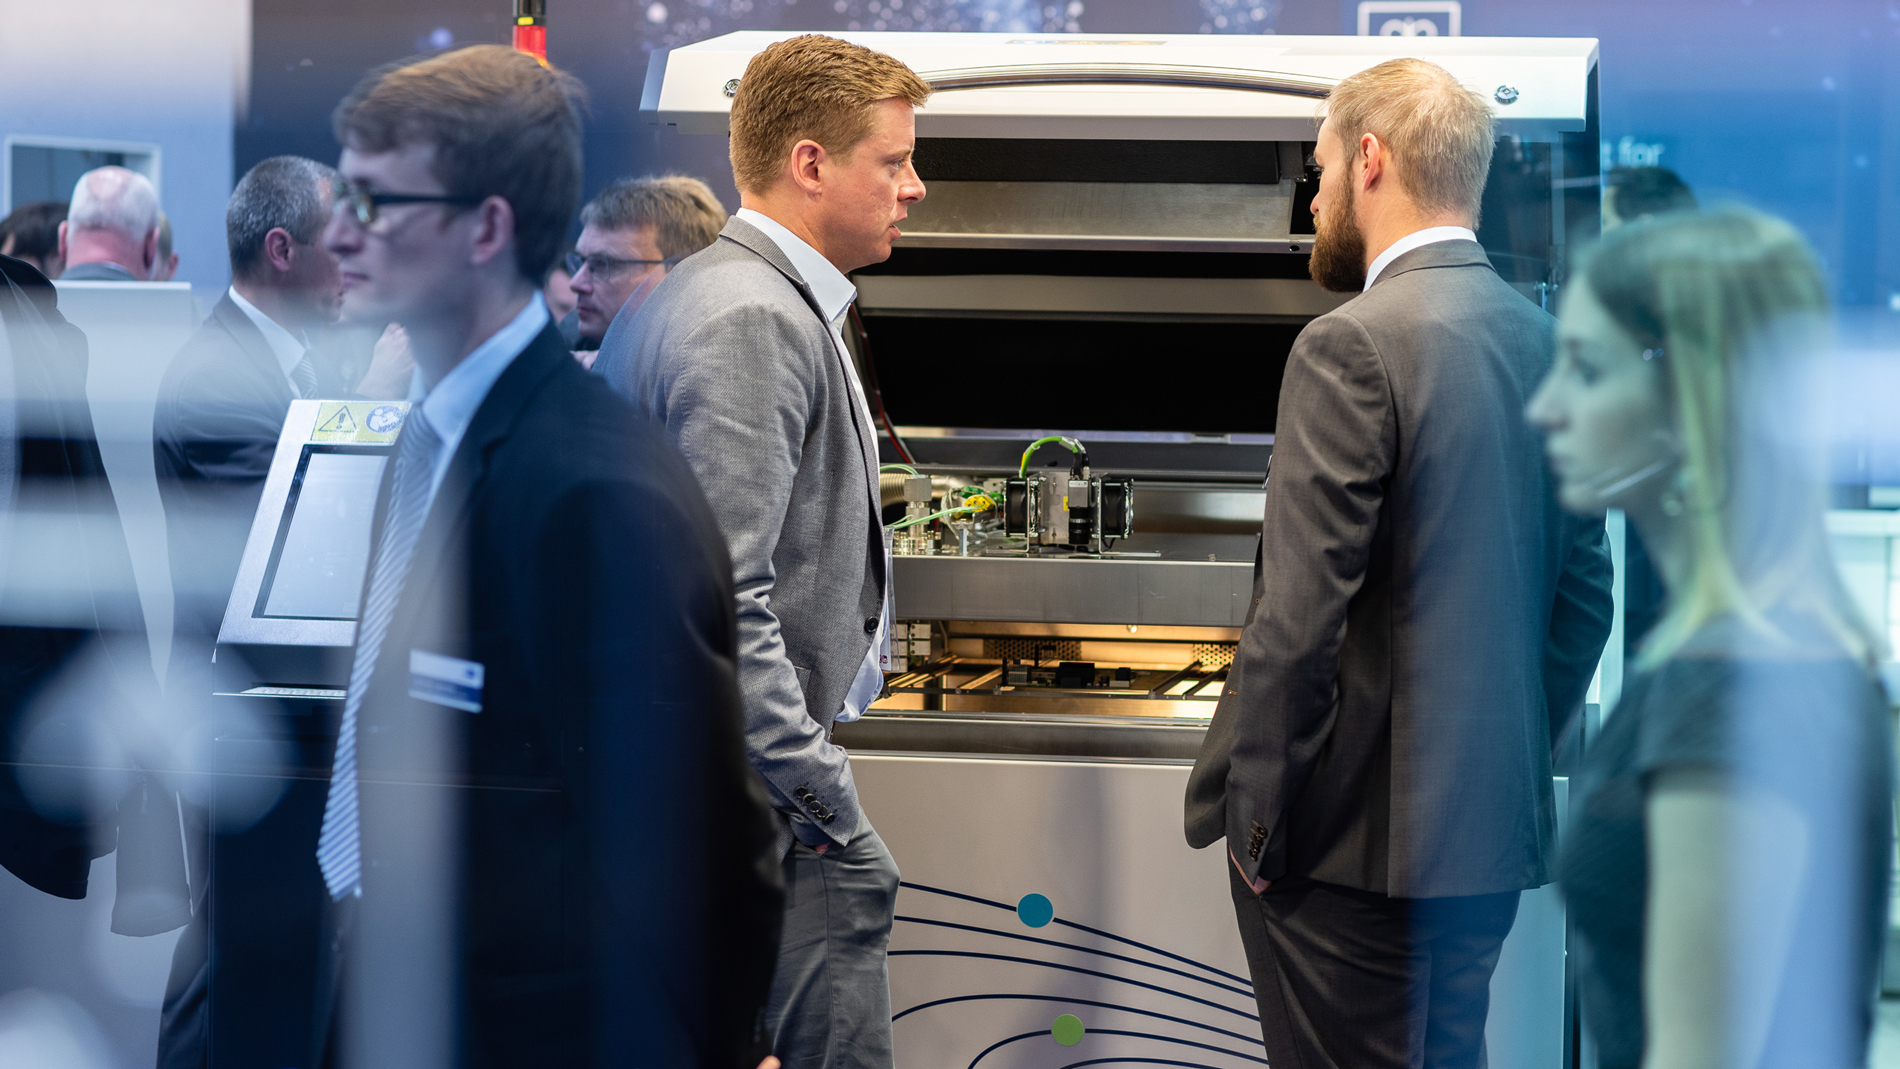 Conversation at the booth of Rehm Thermal Systems GmbH